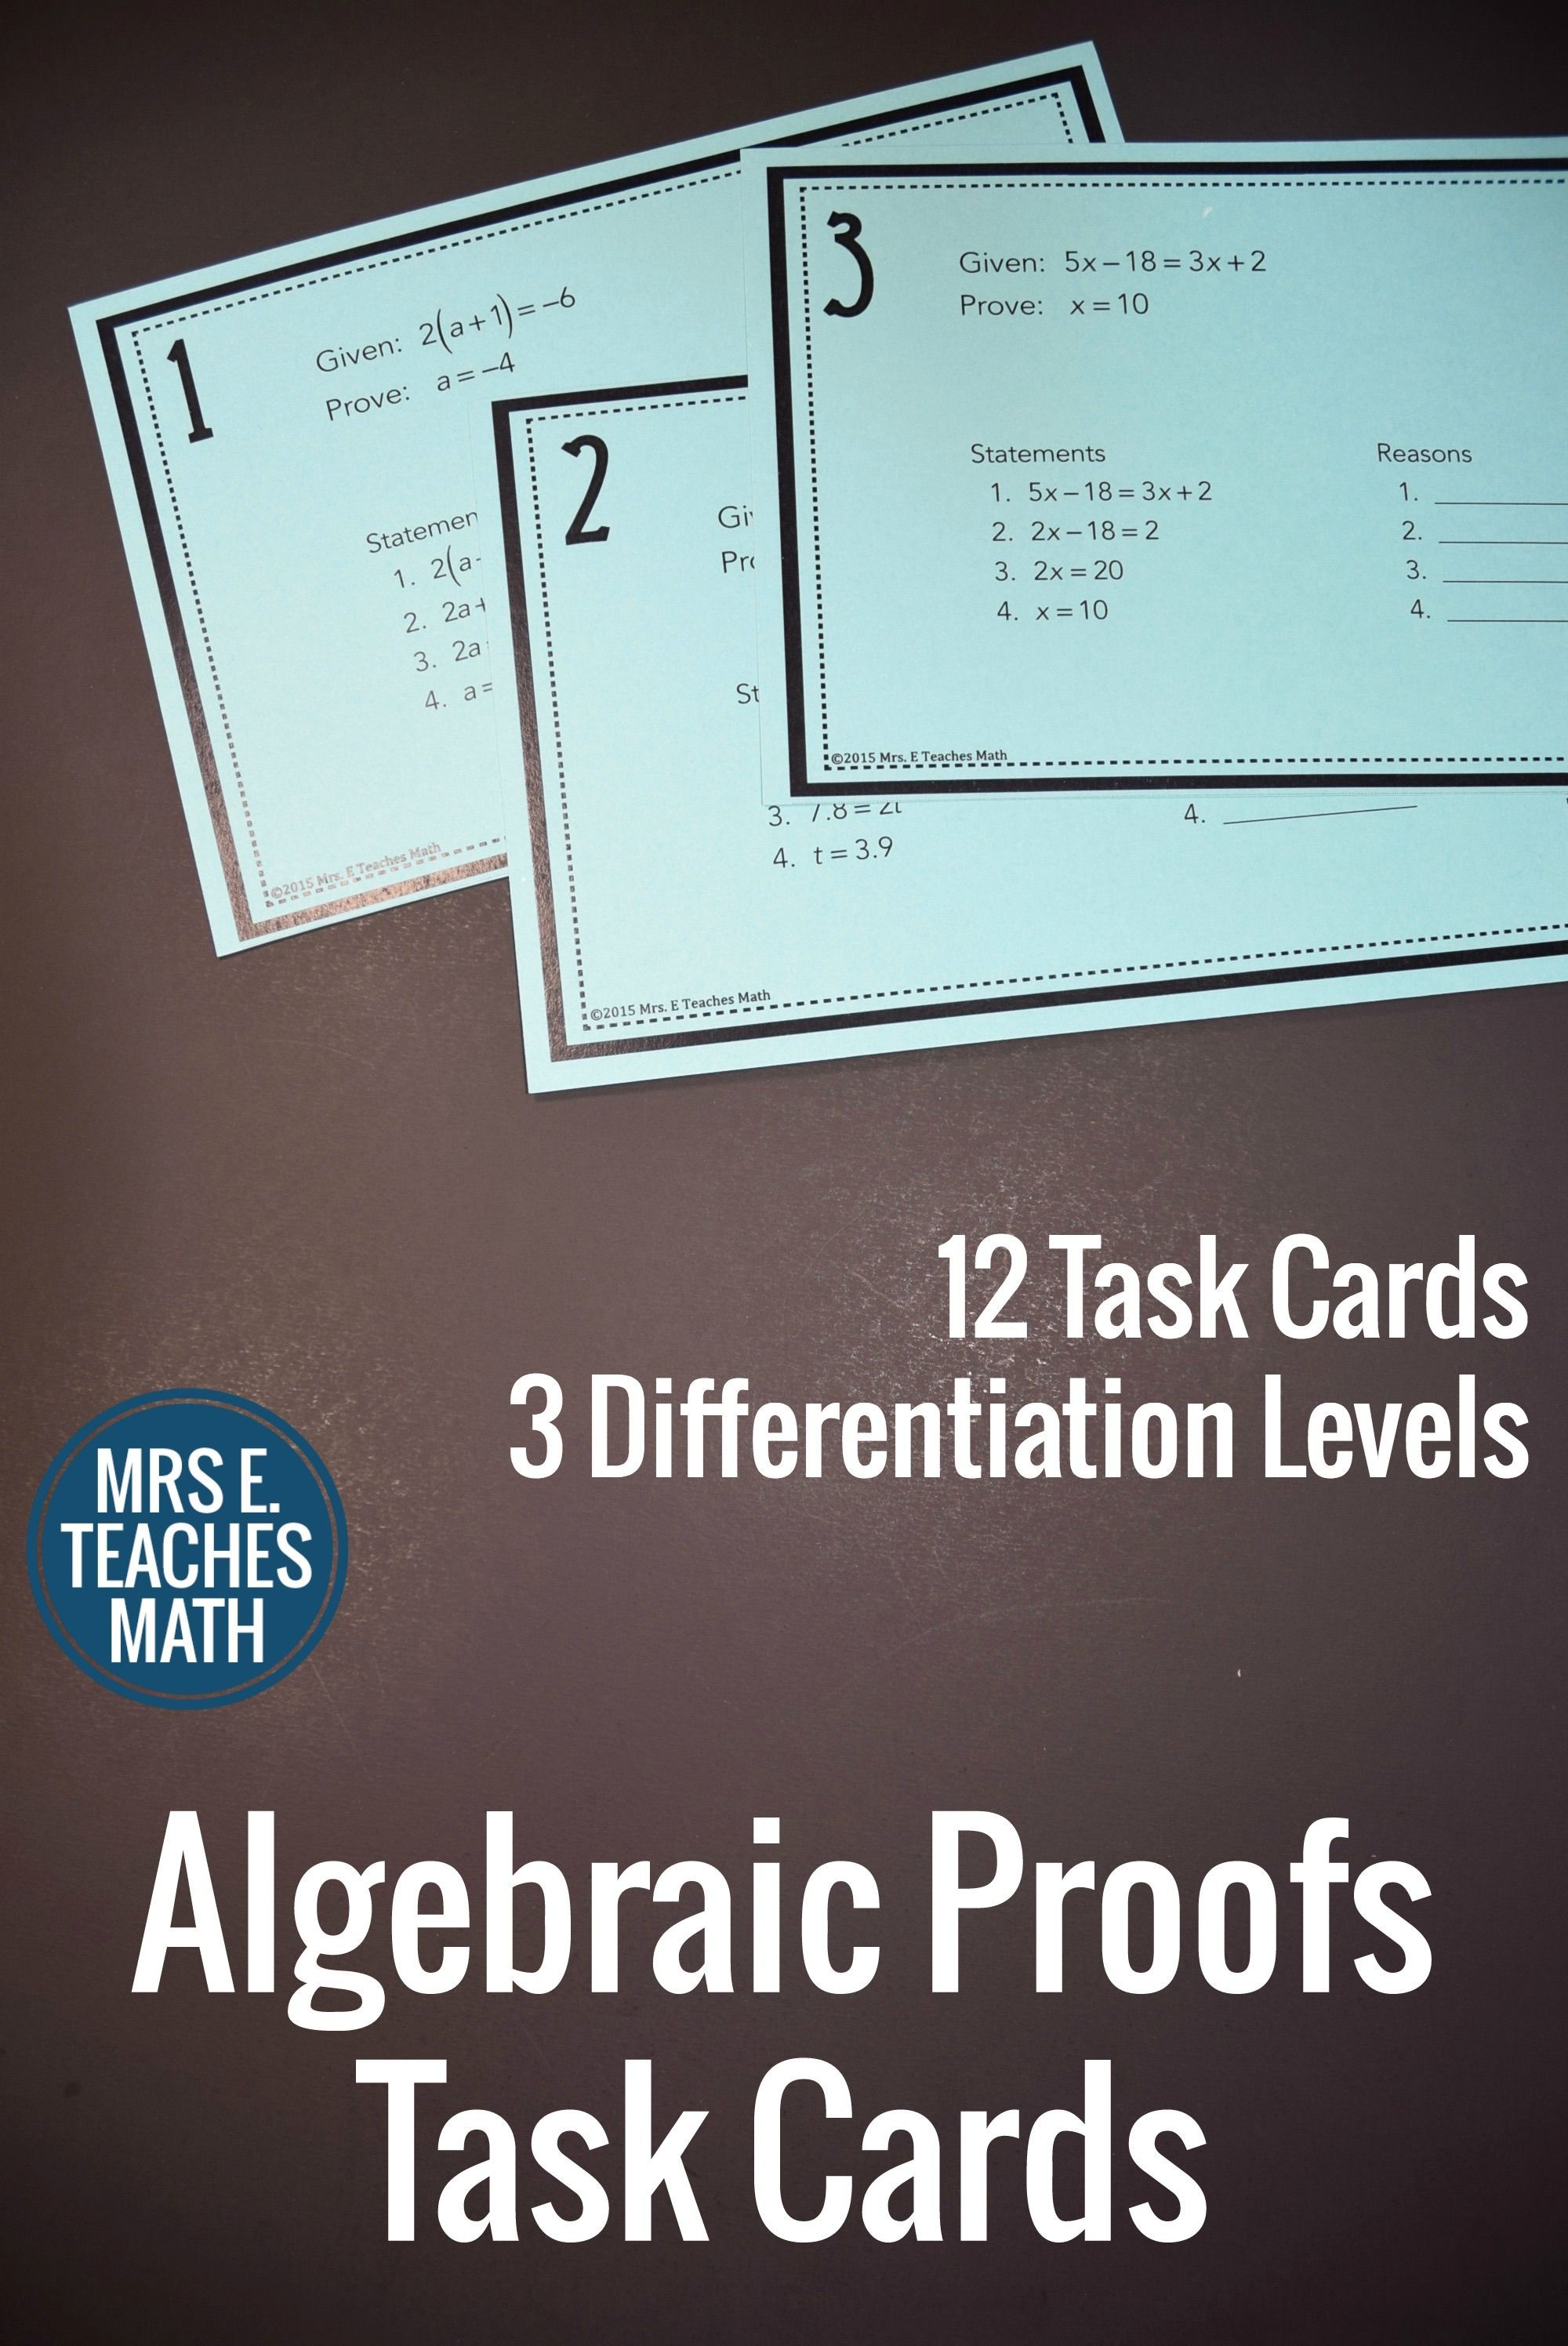 Algebraic Proofs Task Cards With Images